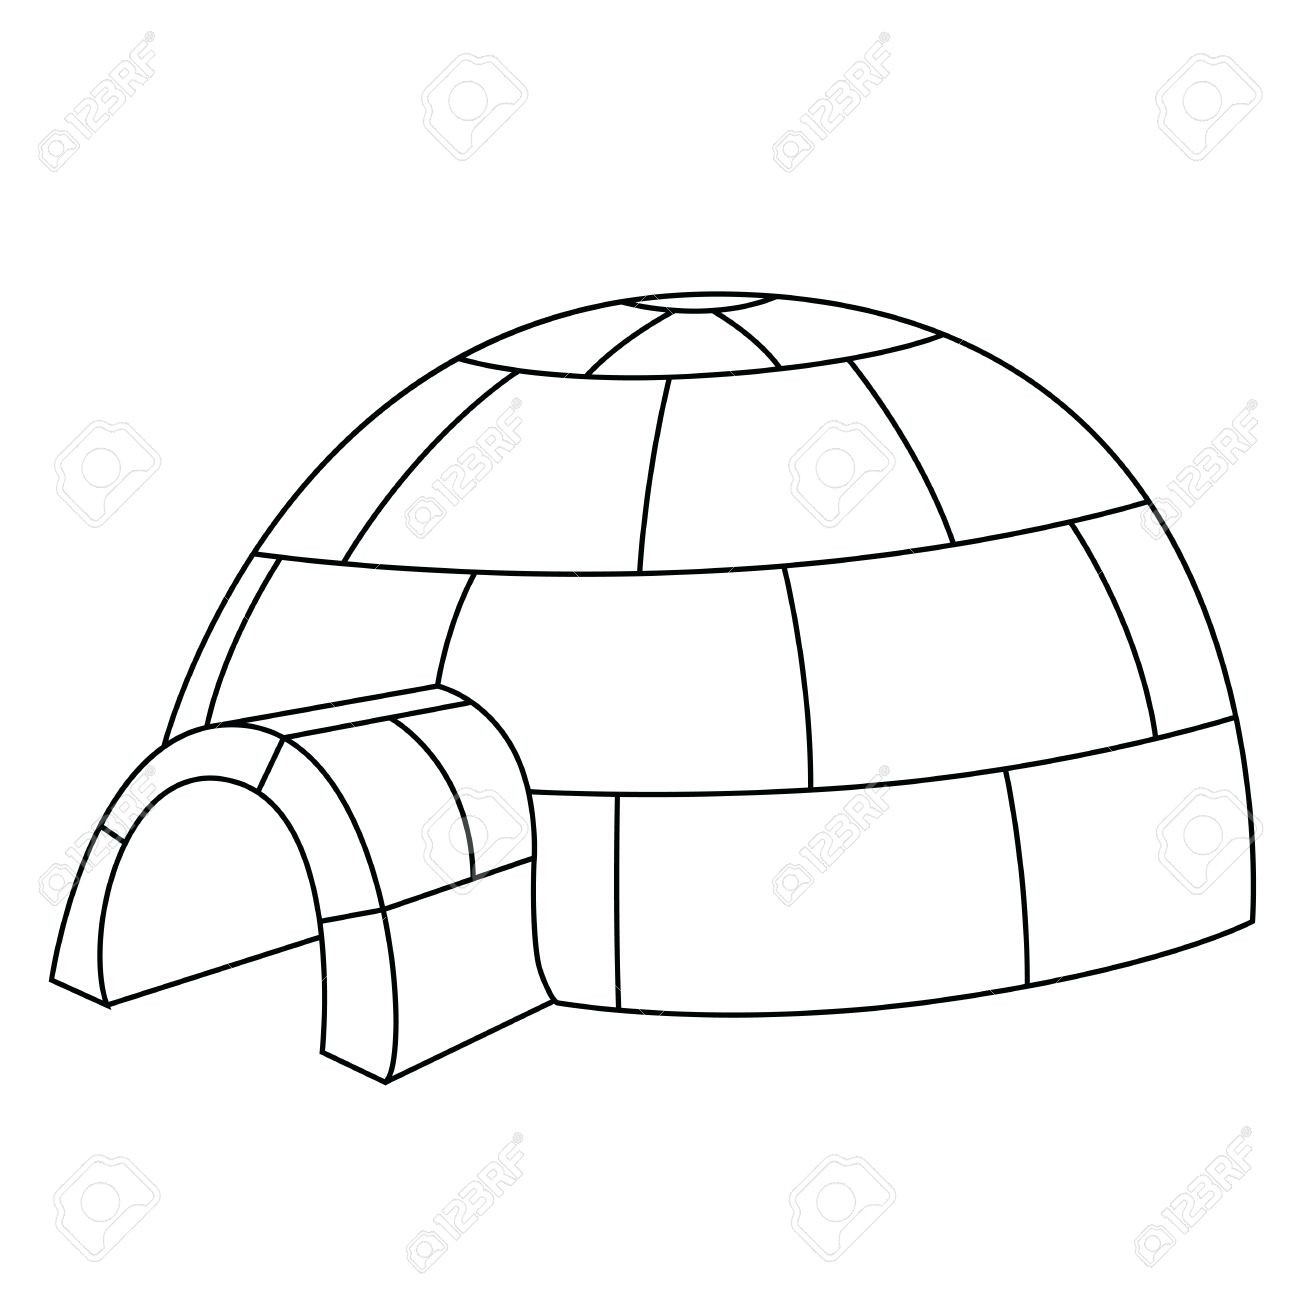 Igloo Clipart Outline intérieur Coloriage Igloo